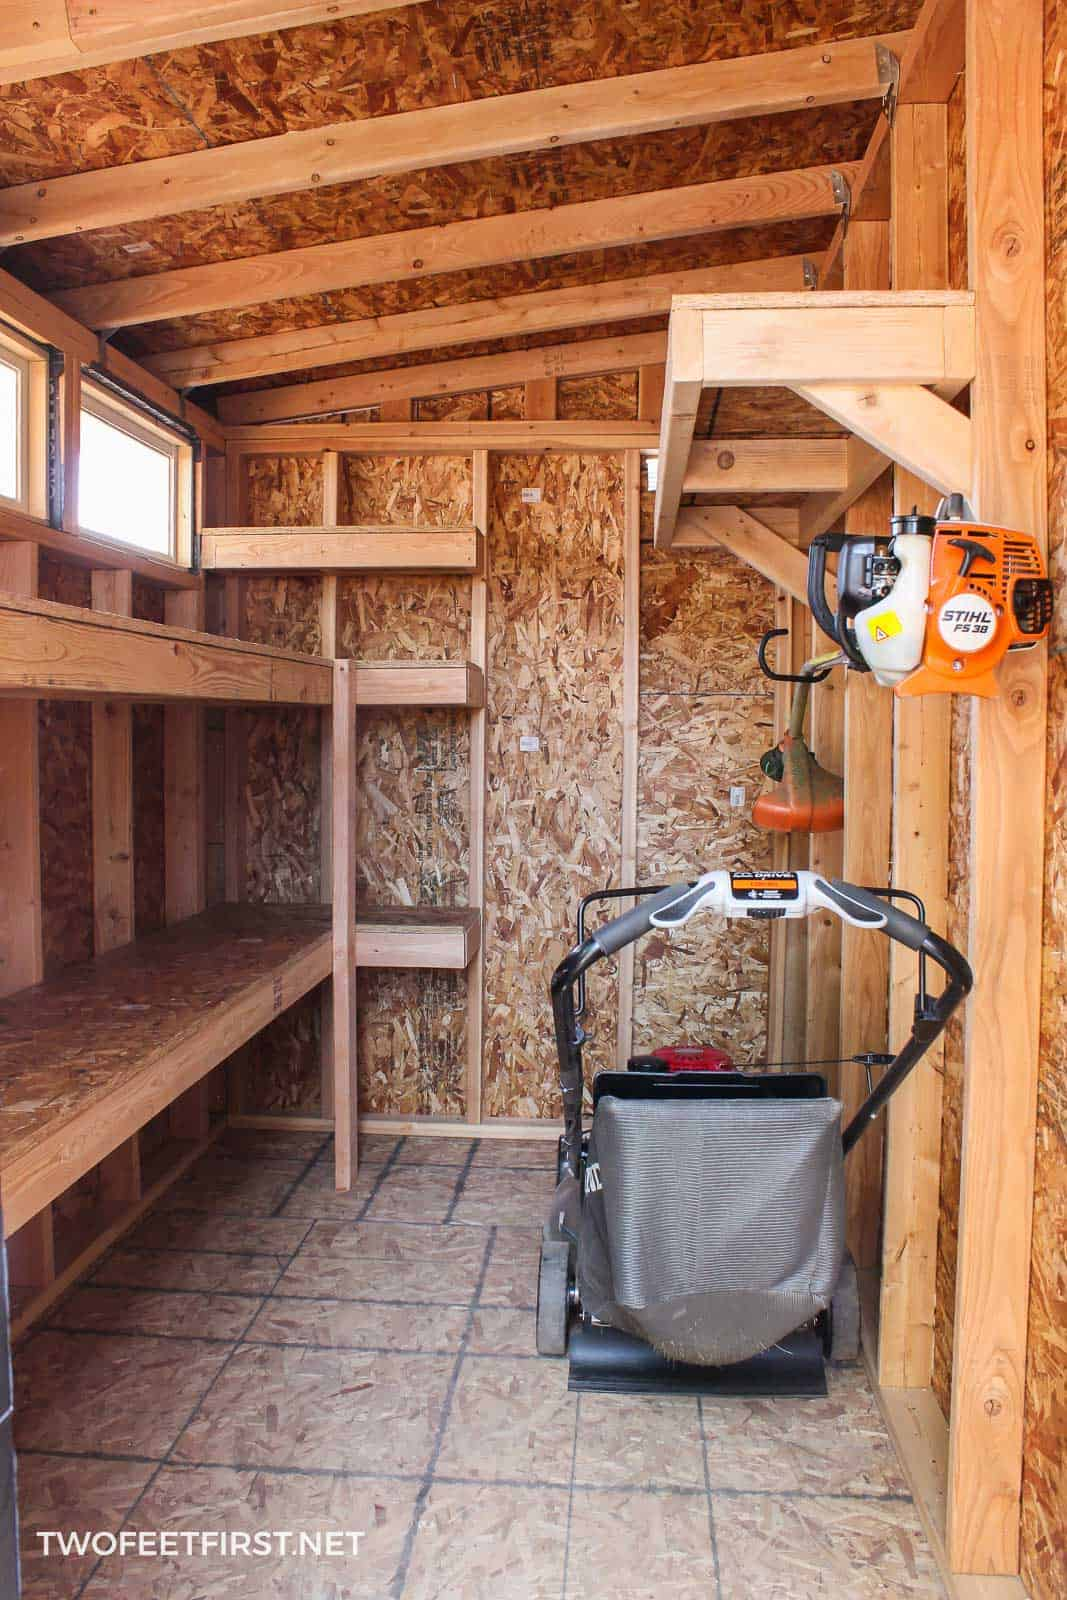 Find out how to construct garage cabinets in a shed or storage